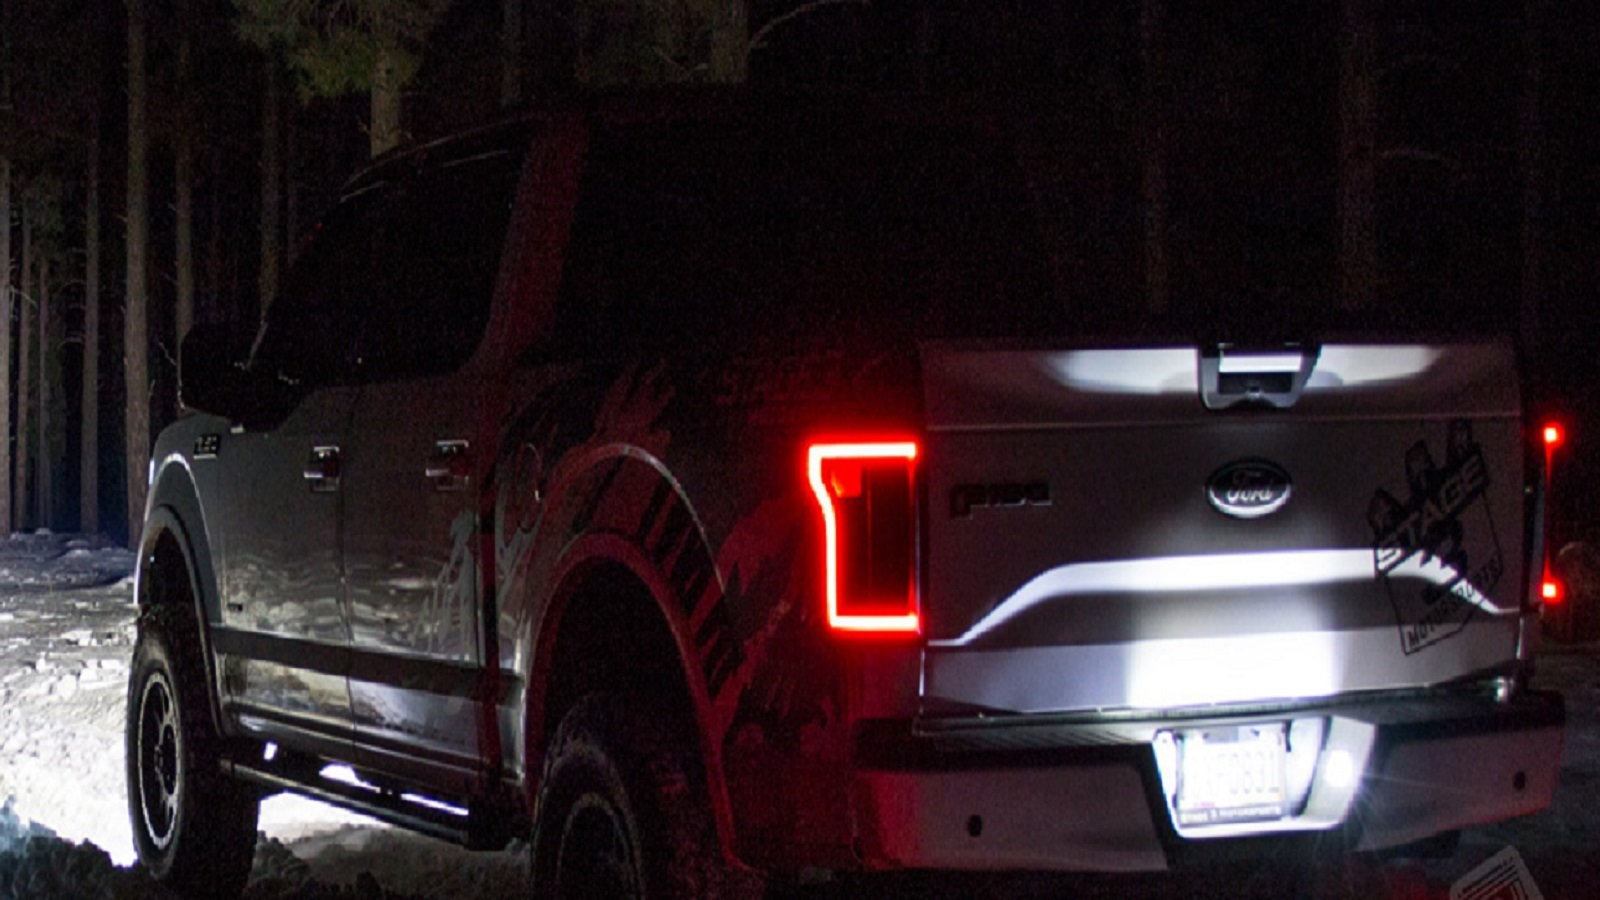 LED License plate Lights on your Ford Truck